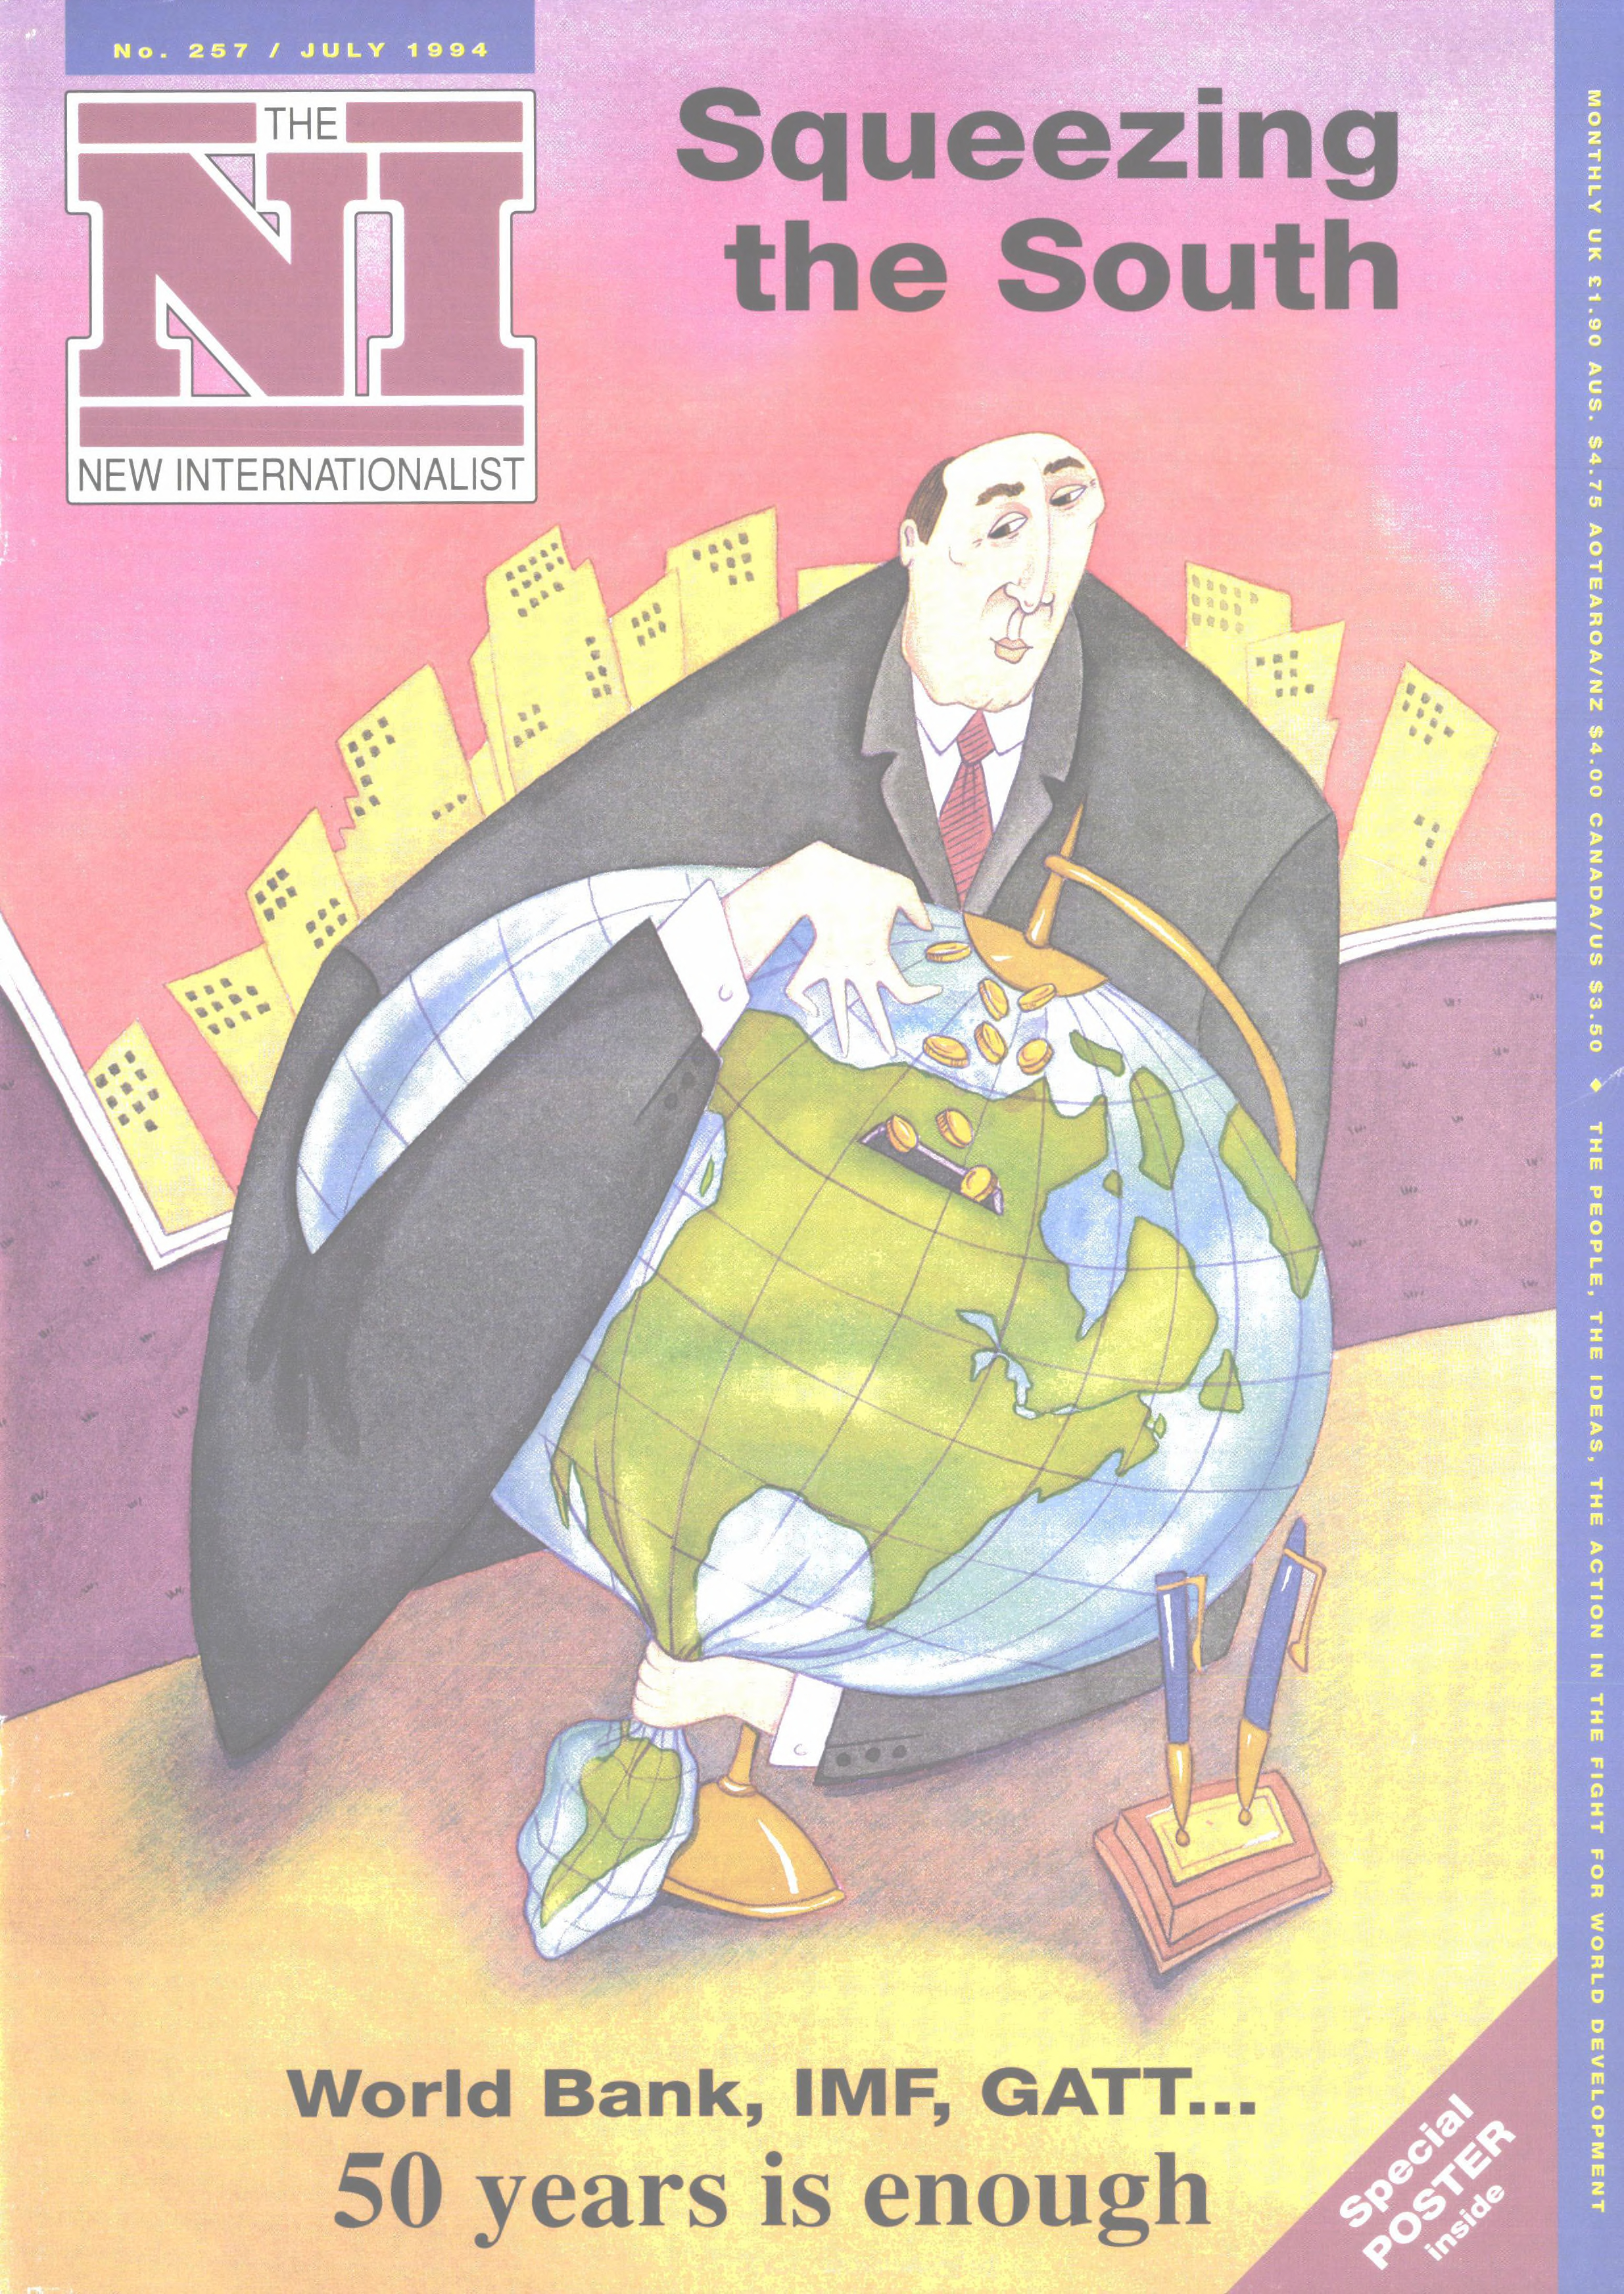 New Internationalist issue 257 magazine cover